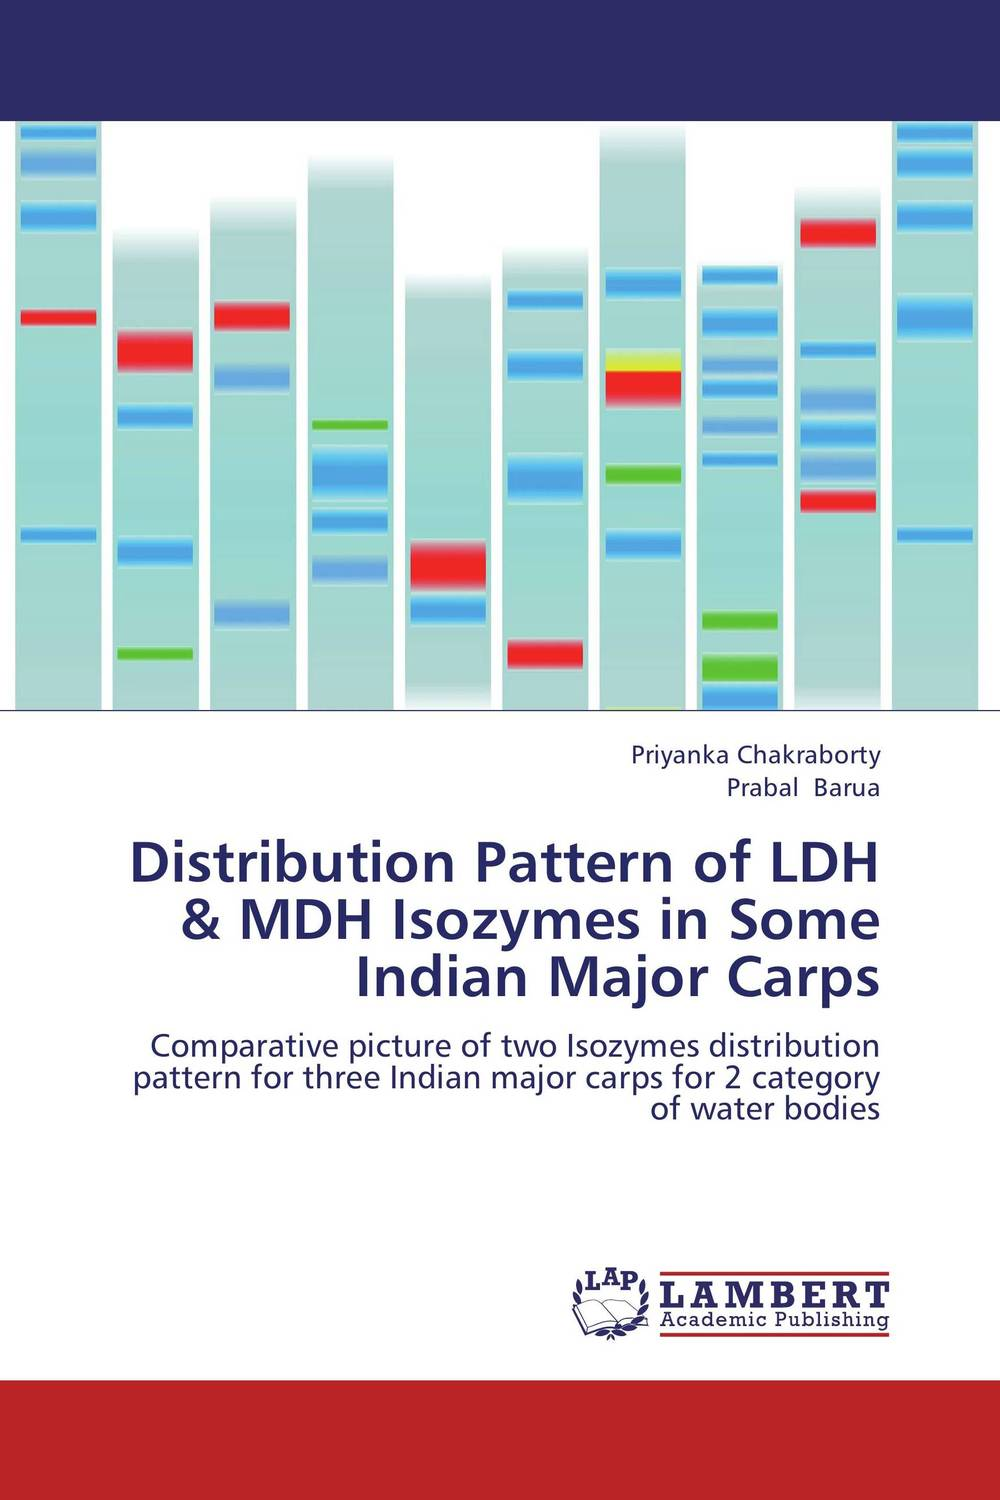 Distribution Pattern of LDH & MDH Isozymes in Some Indian Major Carps крепление и монтаж roland mdh 12